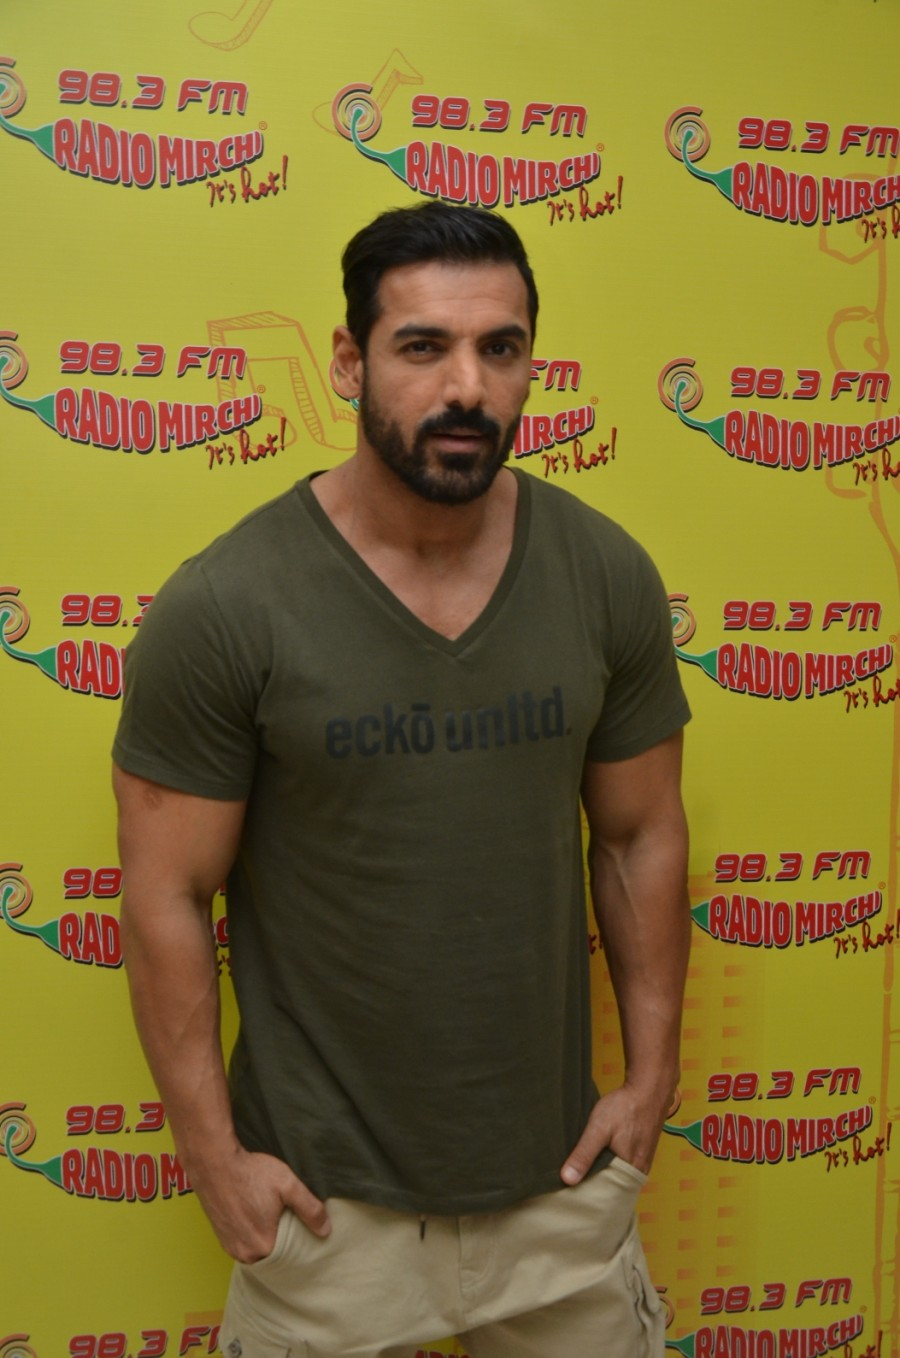 John Abraham,Sonakshi Sinha,John Abraham and Sonakshi Sinha,Force 2,Force 2 promotion,Force 2 movie promotion,John Abraham at Mirchi 98.3 studio,Sonakshi Sinha at Mirchi 98.3 studio